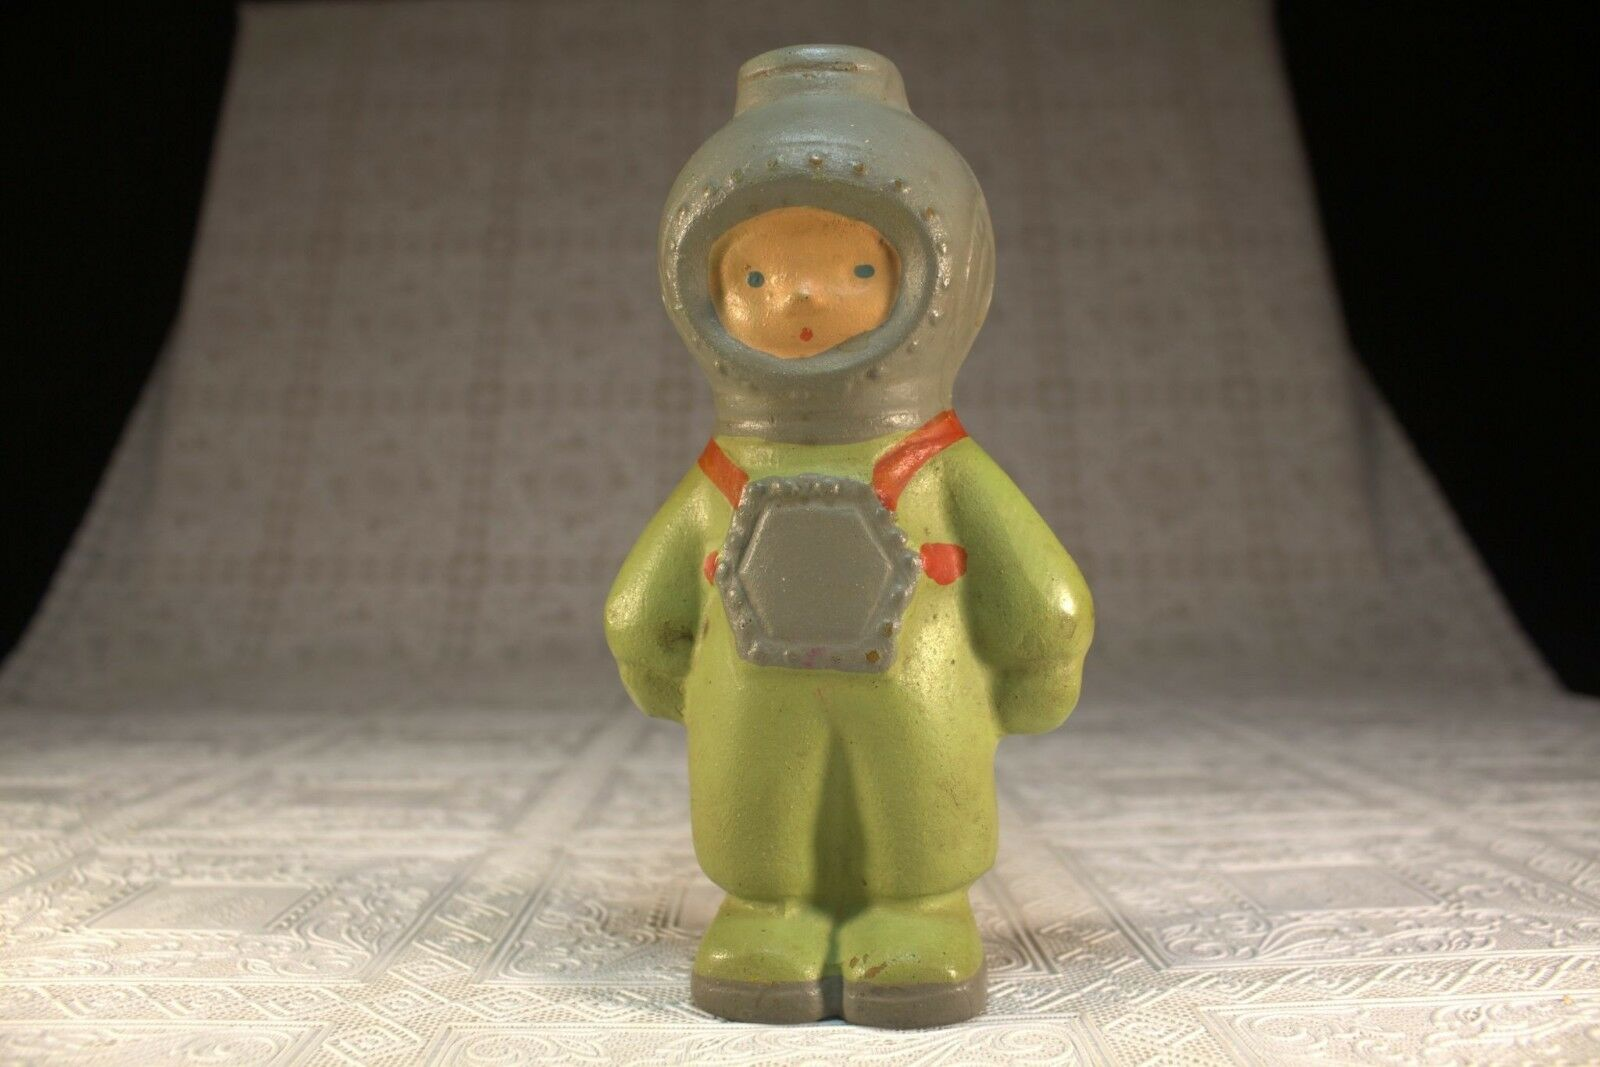 Rare Soviet Ussr Russian Doll rubber DIVER toy - 1960s